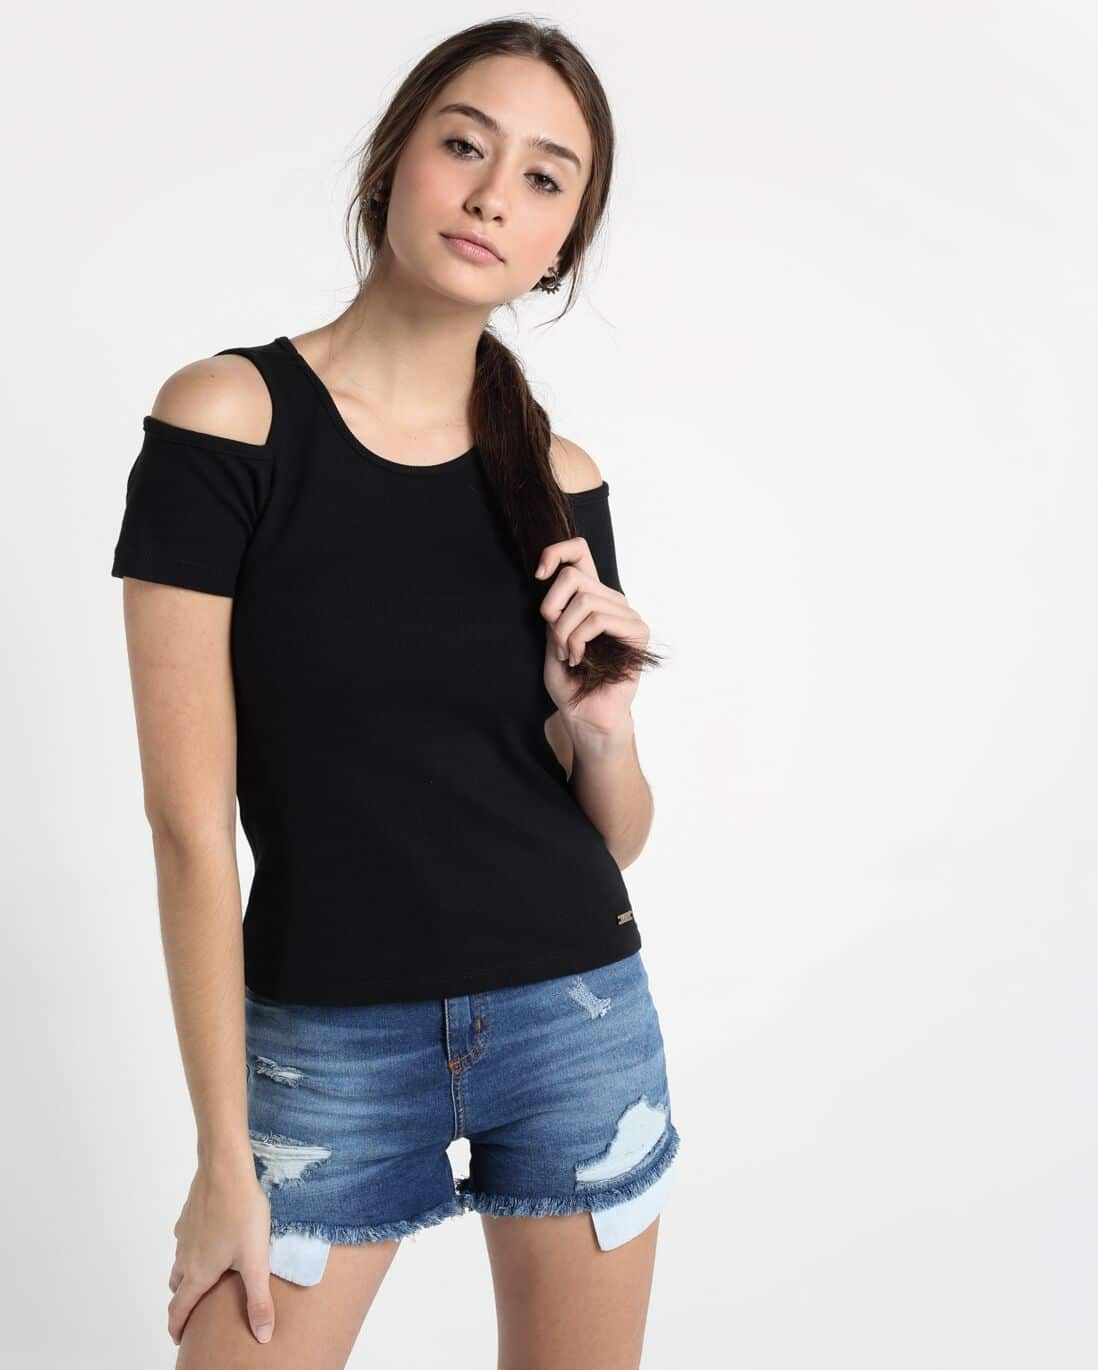 Blusa Open Shoulder Básica - Preto